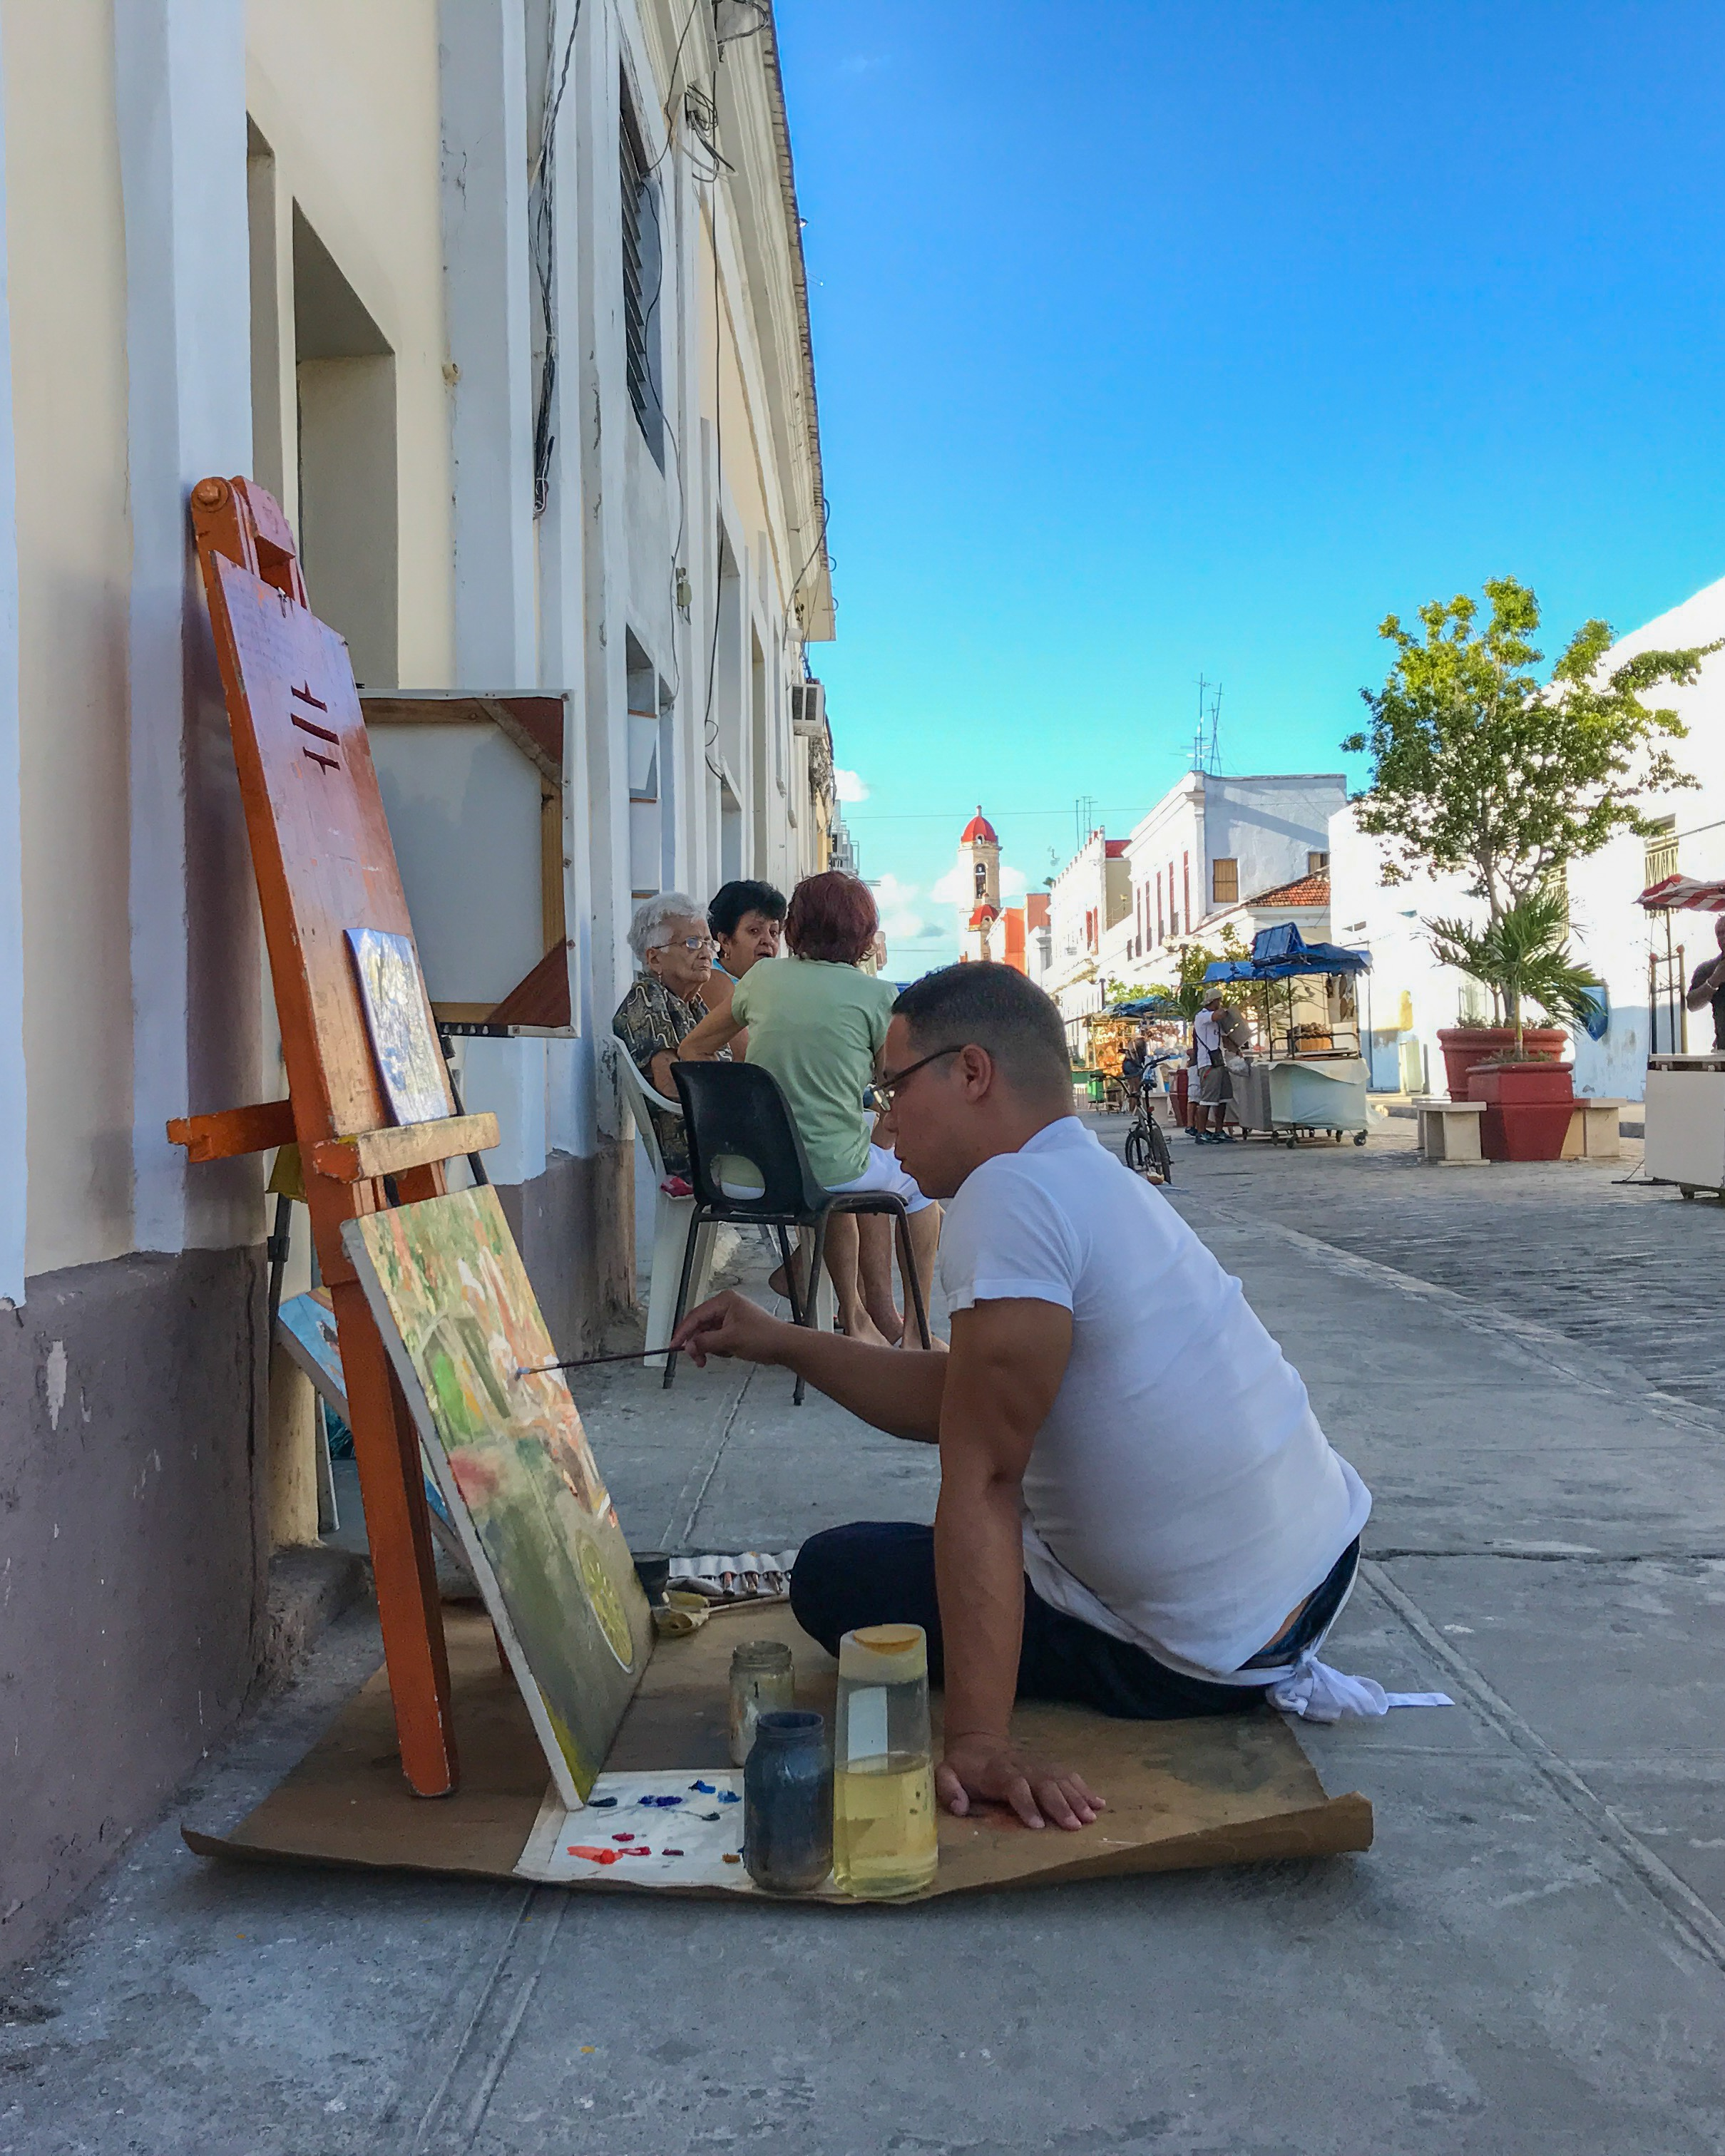 Observing an artist at work in Cienfuegos